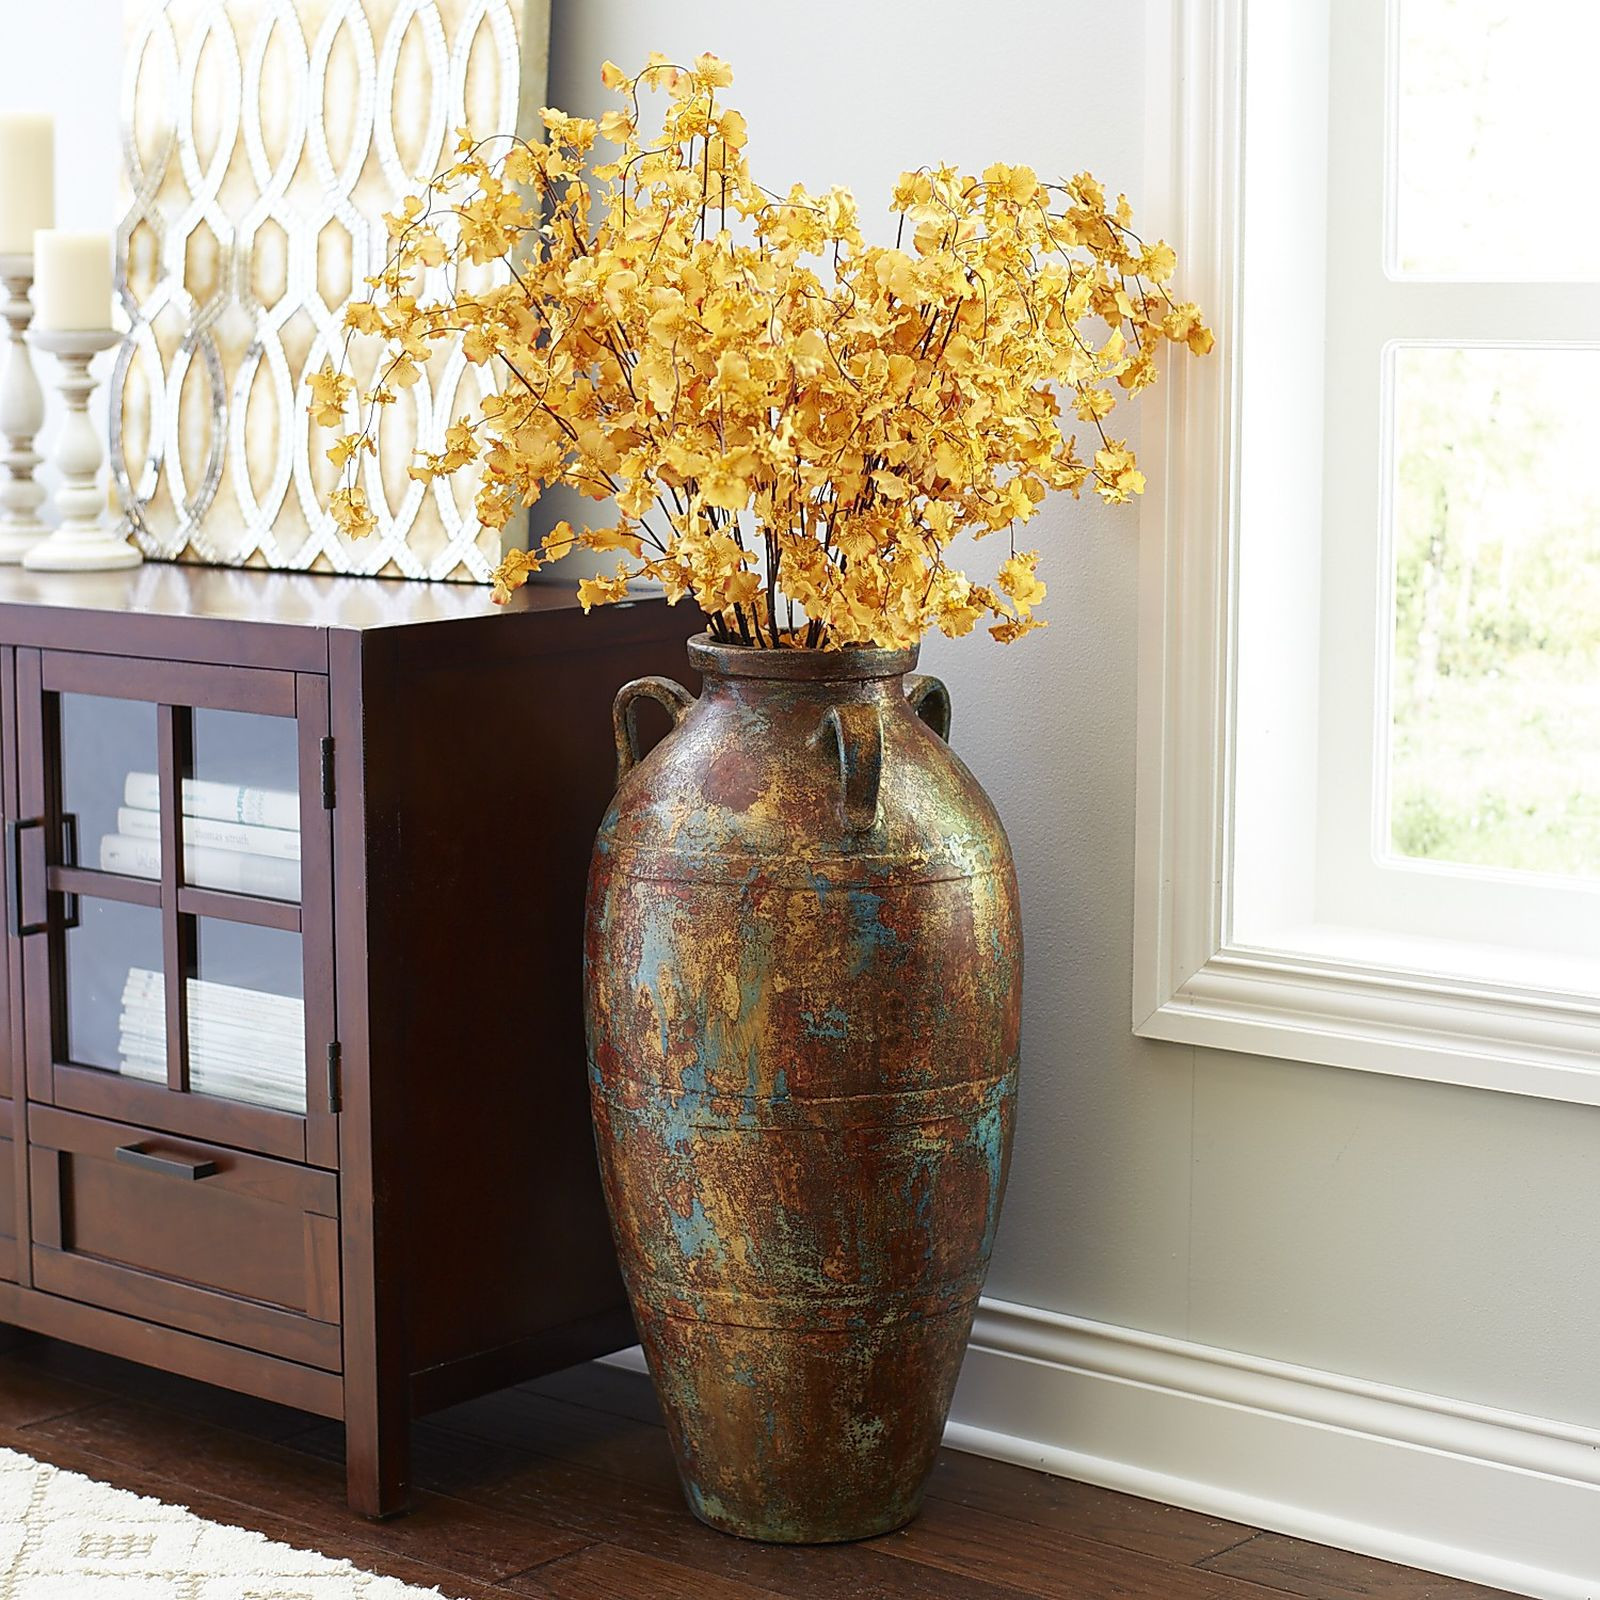 36 inch floor vase of tall mirrored floor vase mirror ideas intended for terracotta floor vase ideas of large vases for living room extra